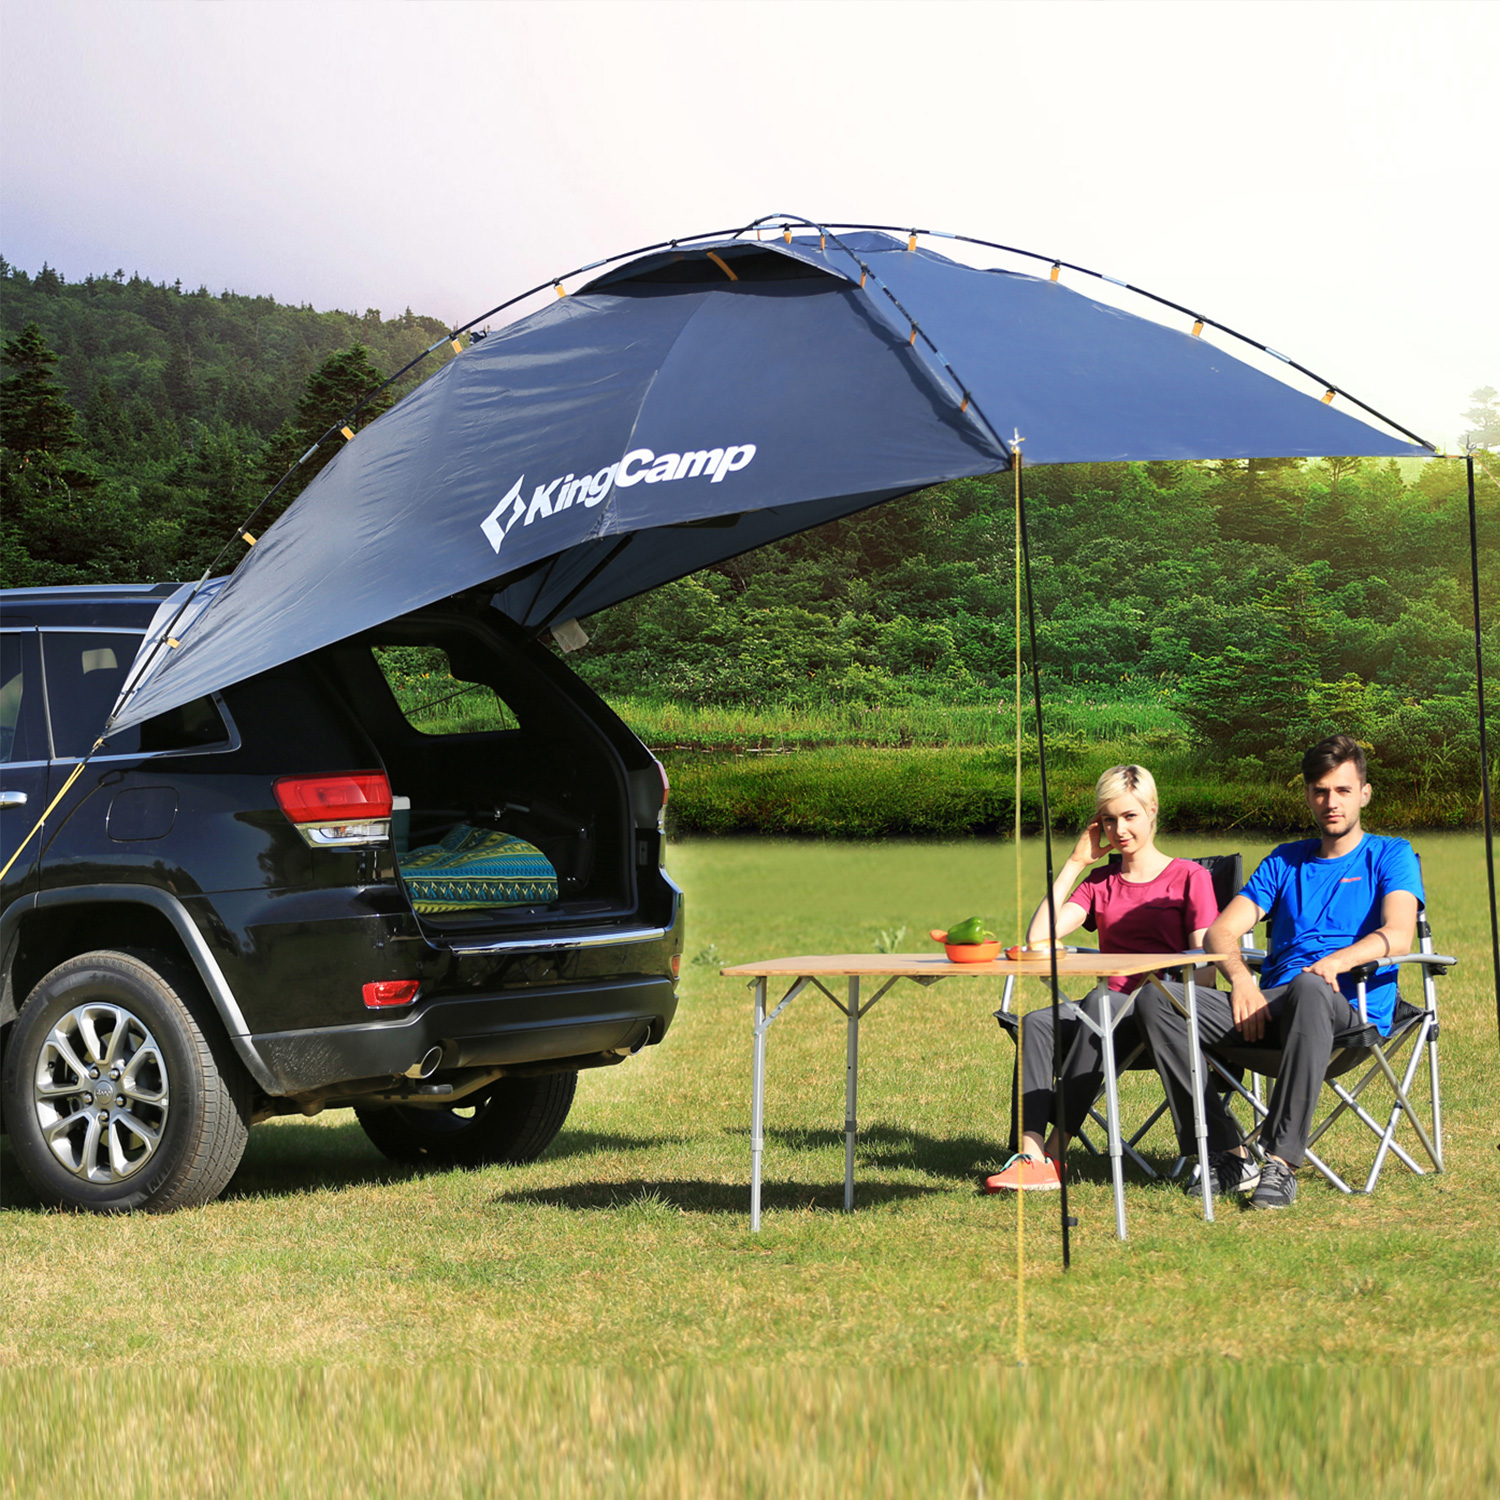 Kingcamp SUV Shelter Truck Car Tent Trailer Awning Rooftop